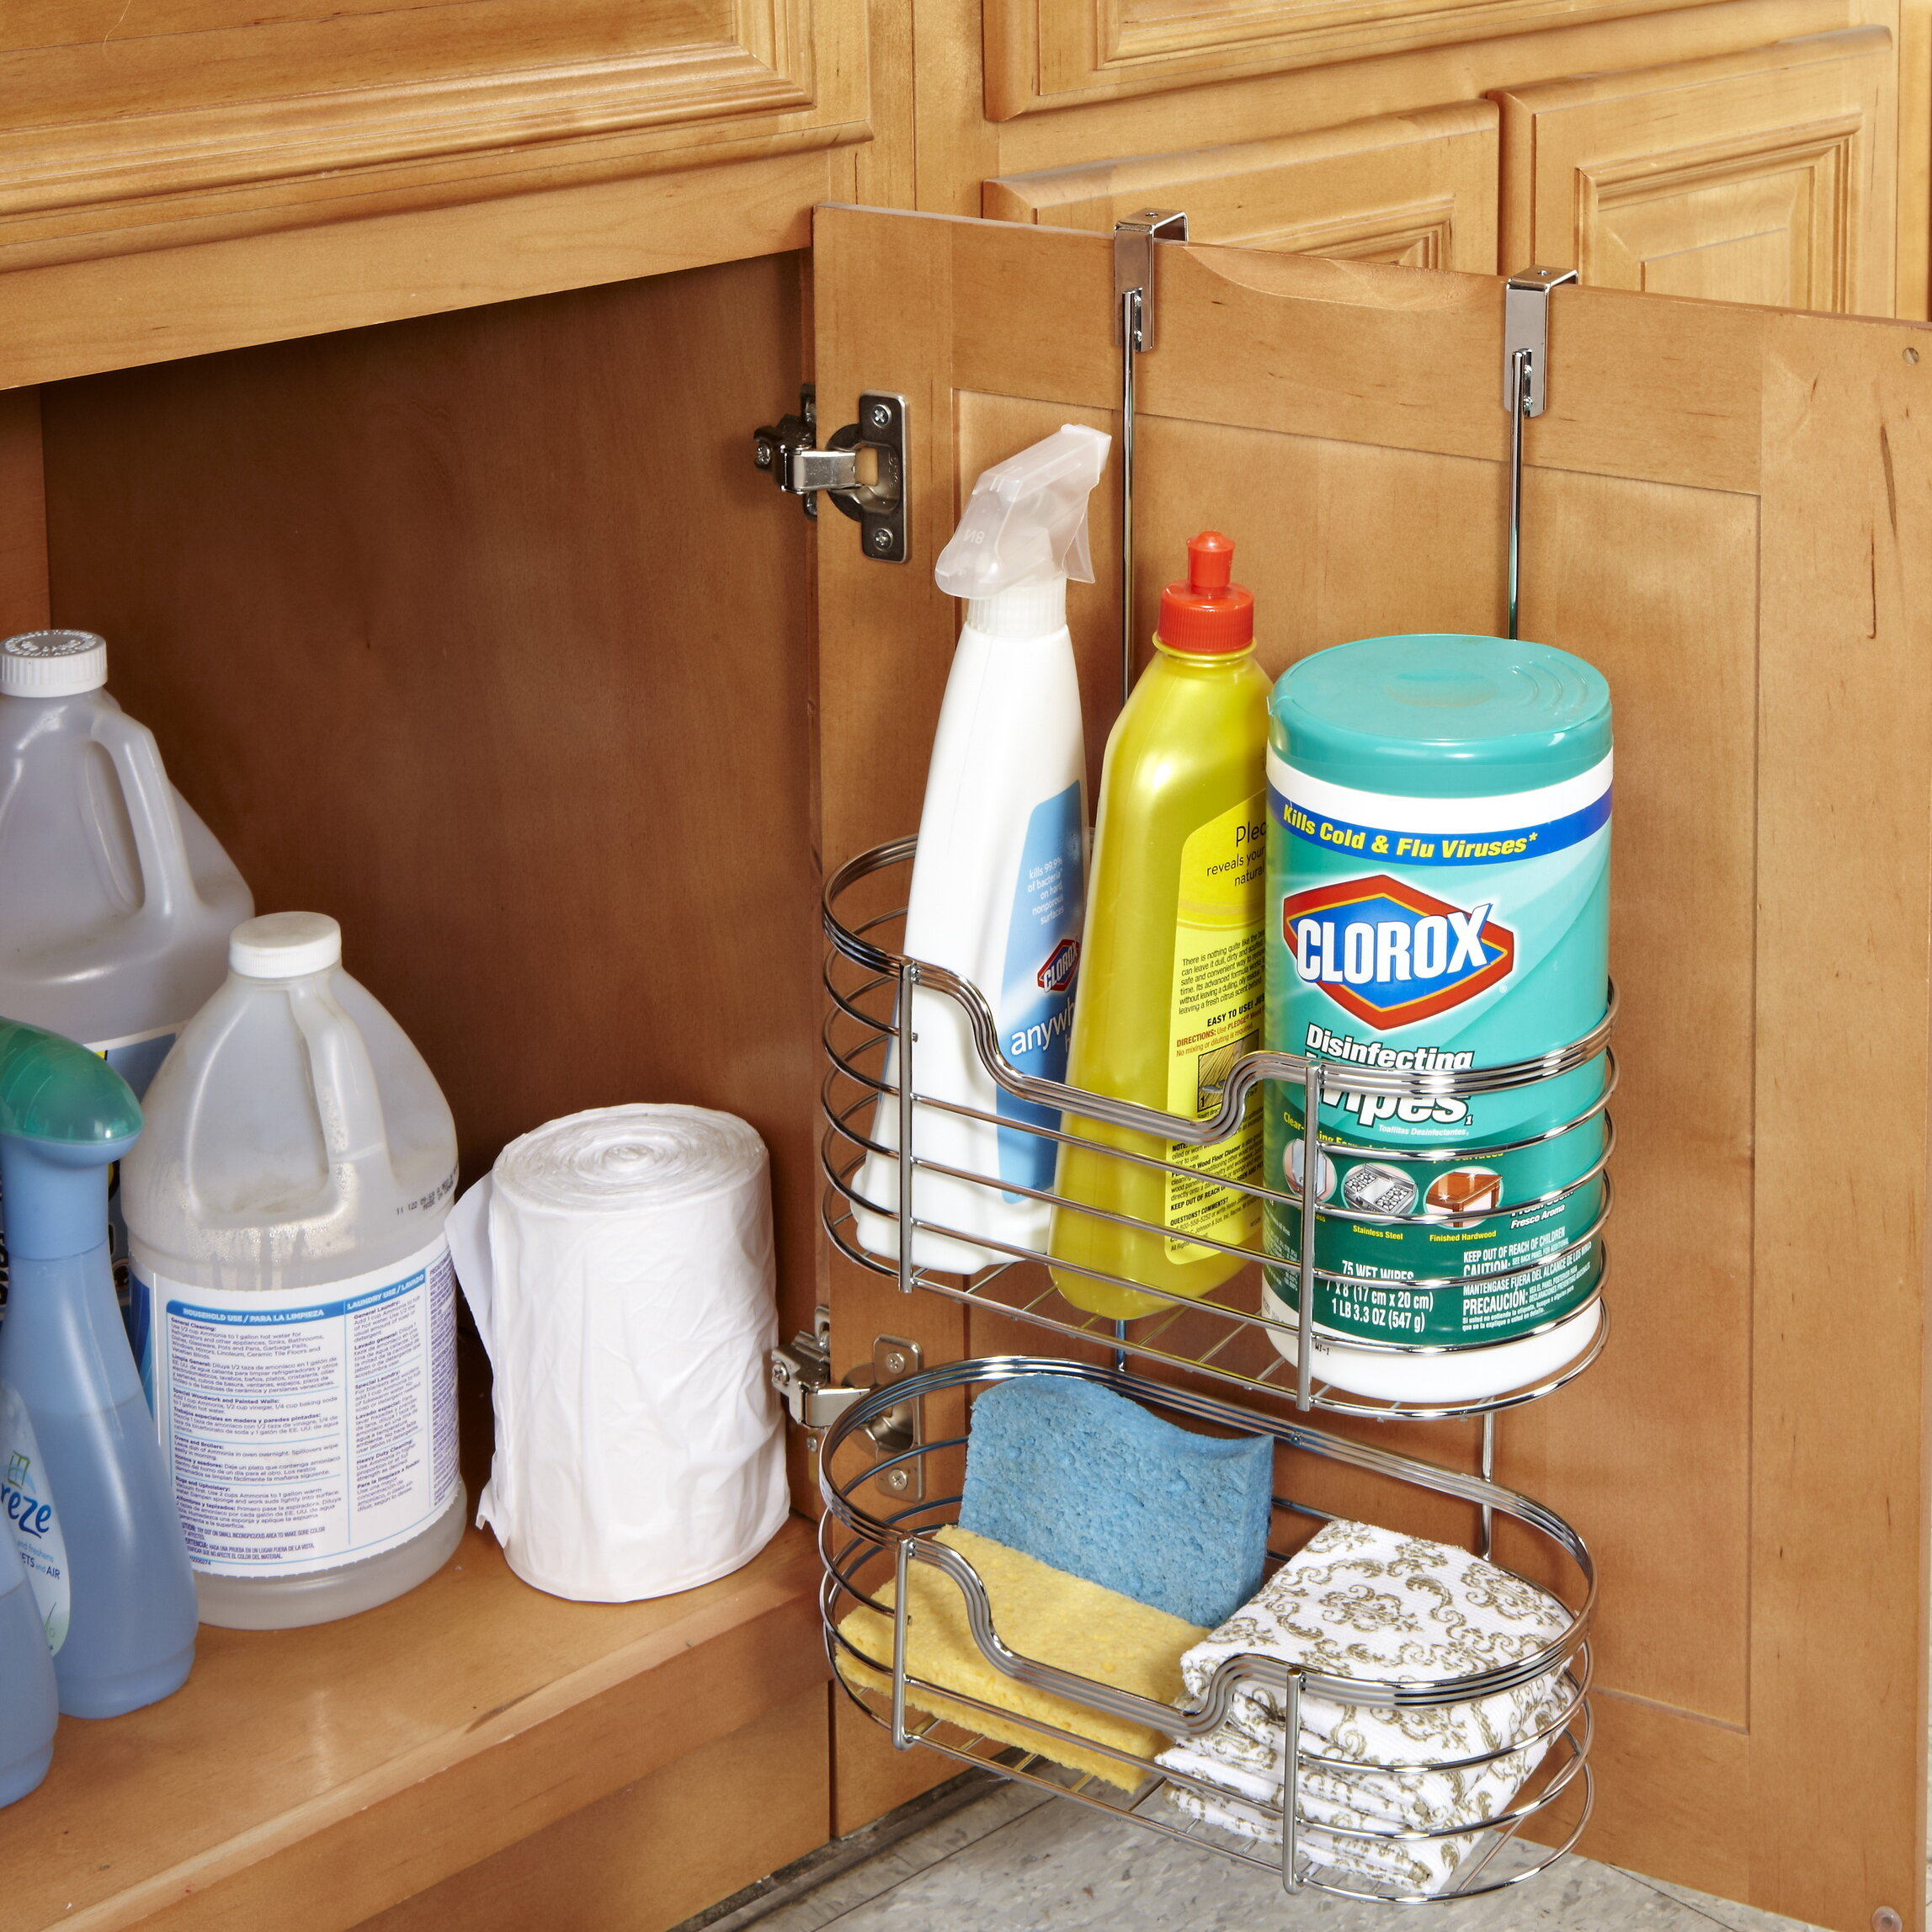 Simplify 2 Tier Over The Cabinet Door Organizer Reviews Wayfair